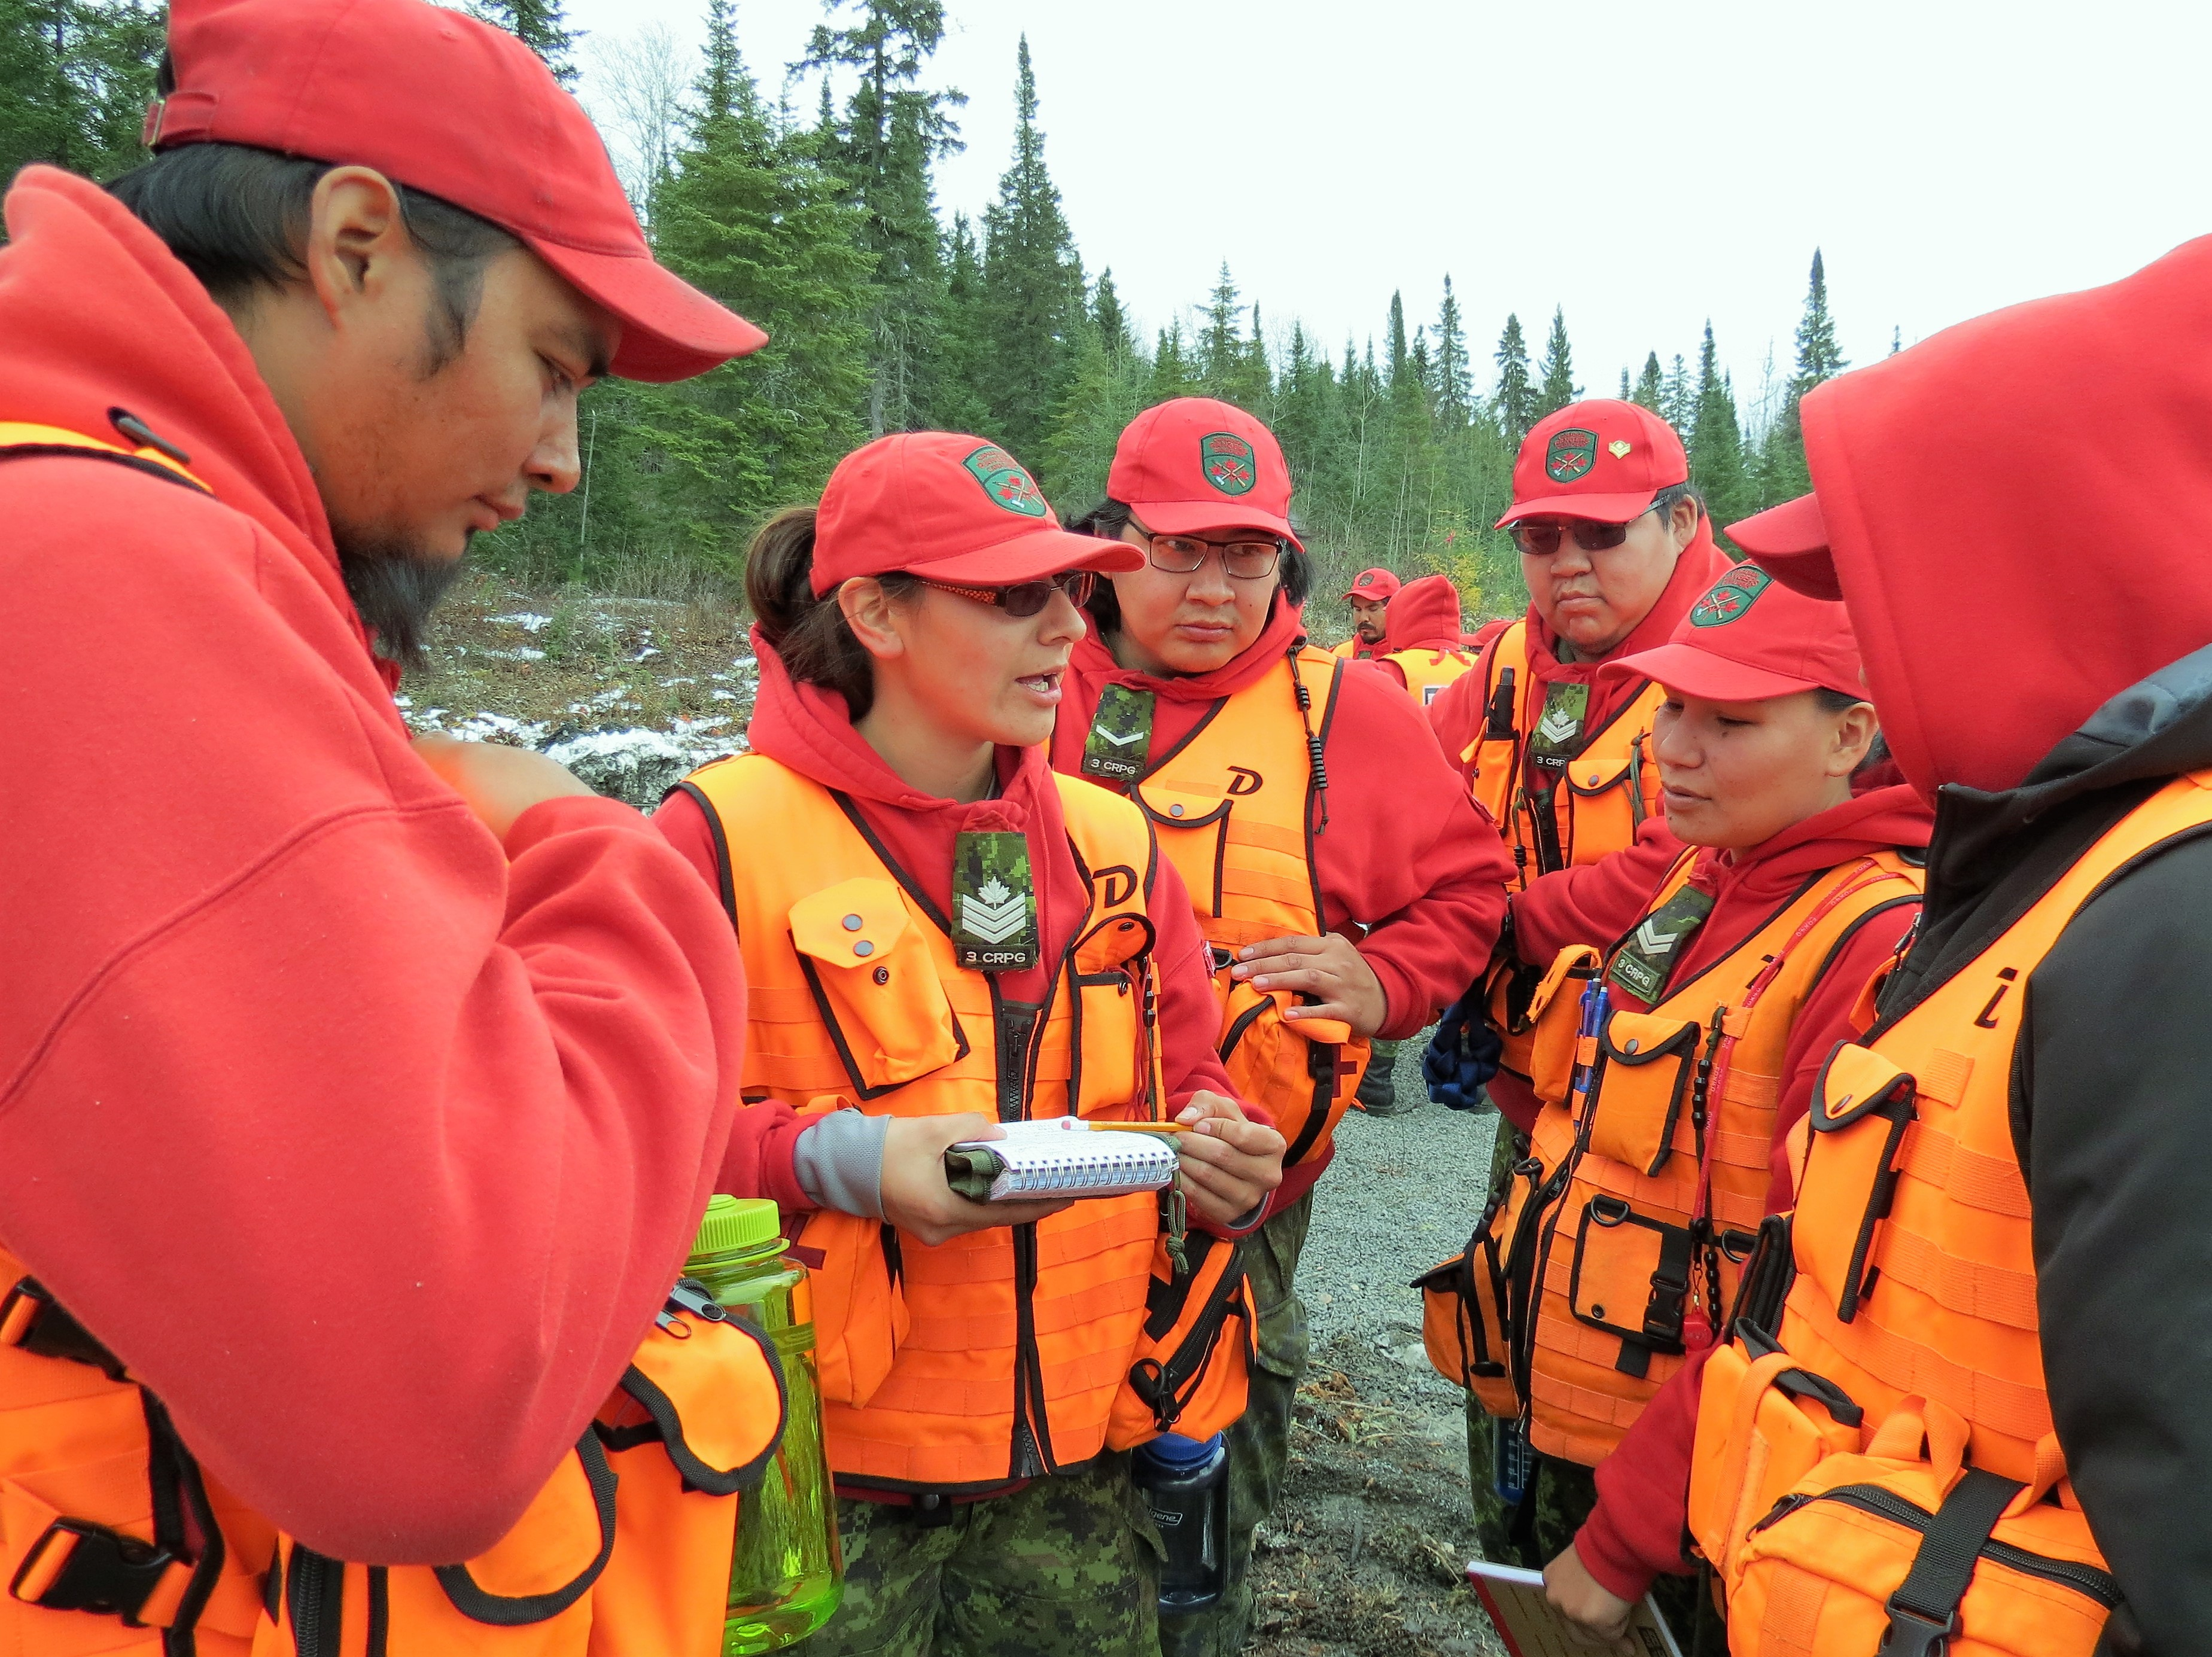 CANADIAN RANGERS COMPLETE SEARCH AND RESCUE TEAM